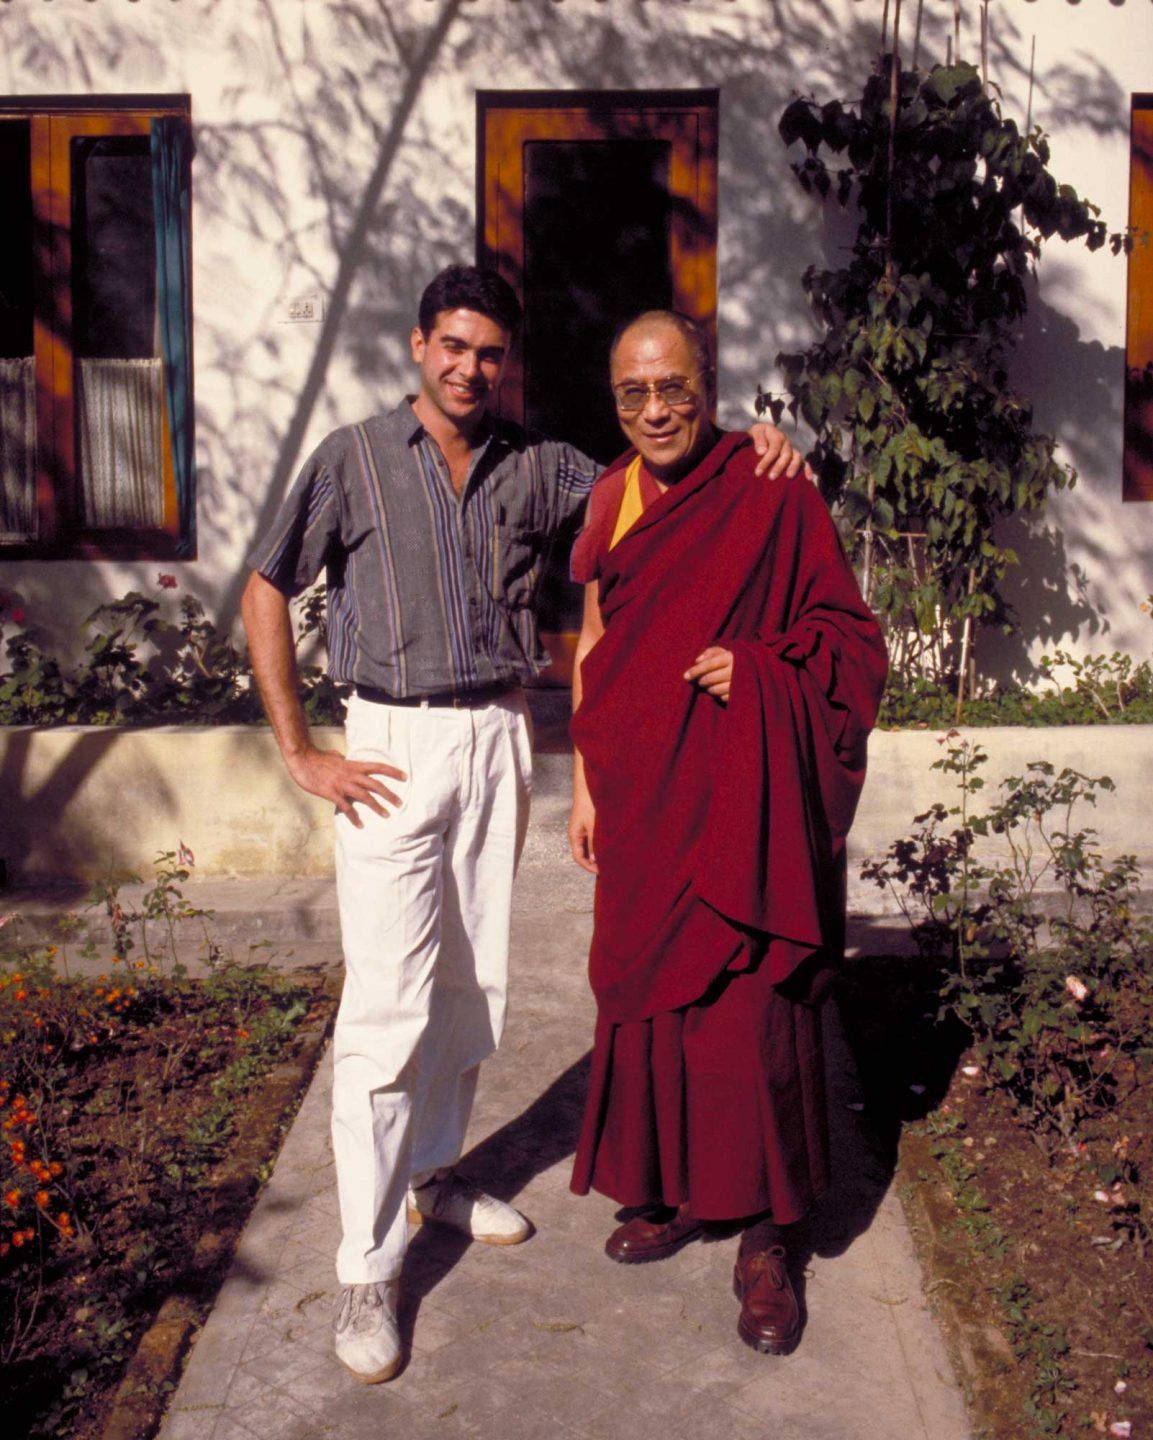 Yours truly posing with his holiness.